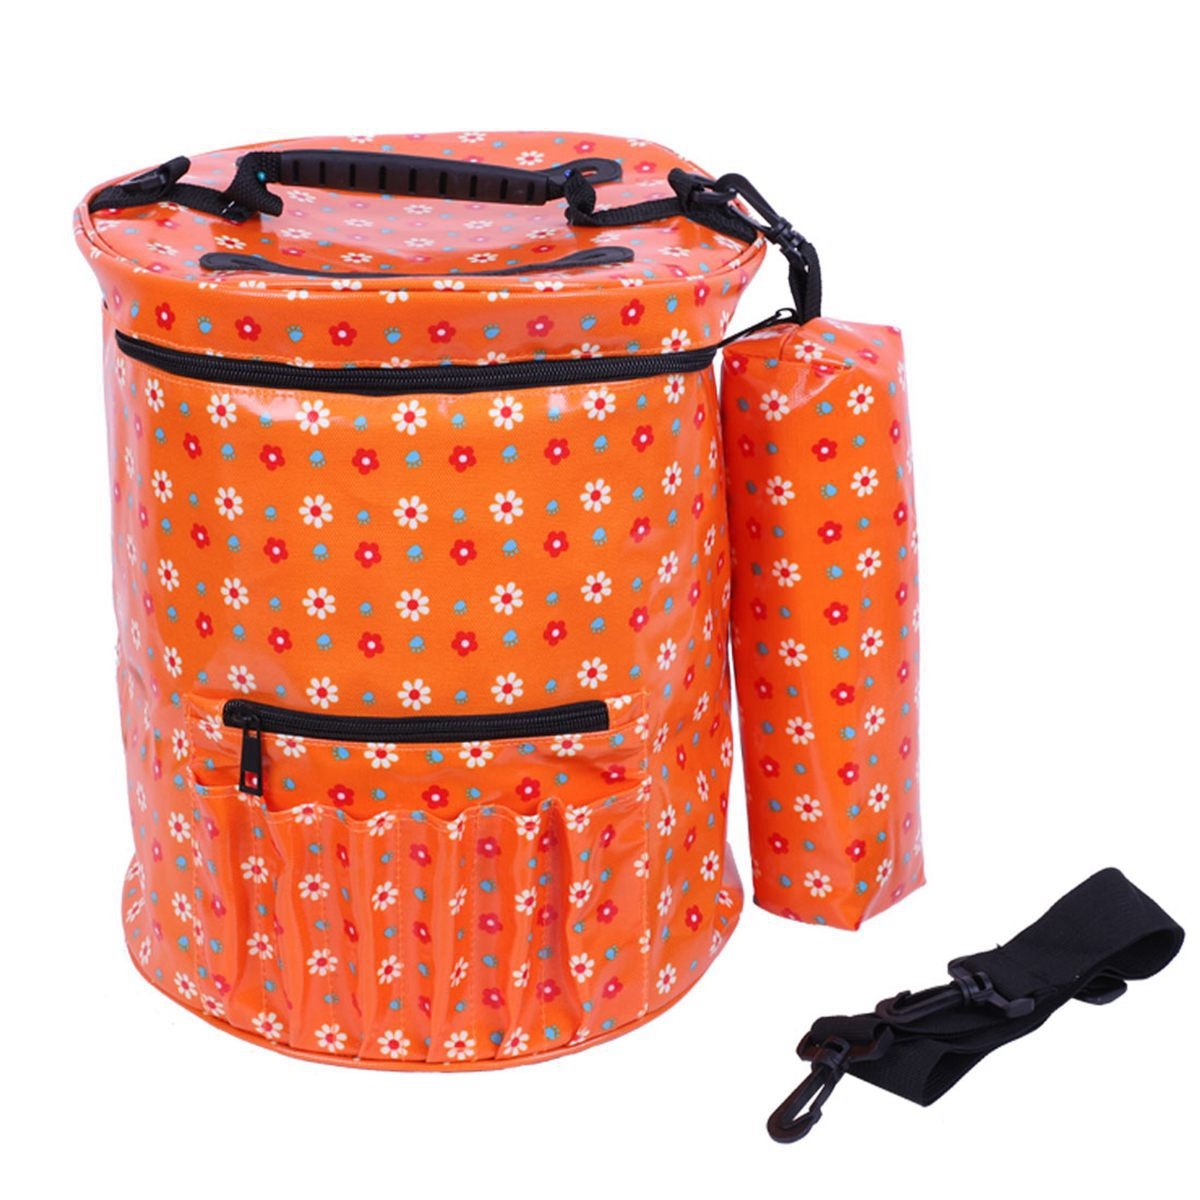 JHD Yarn Bag,Bloomma Waterproof Canvas Knitting Bag with Shoulder Strap Crochet and Needles Hooks Accessories Wool Storage Bag